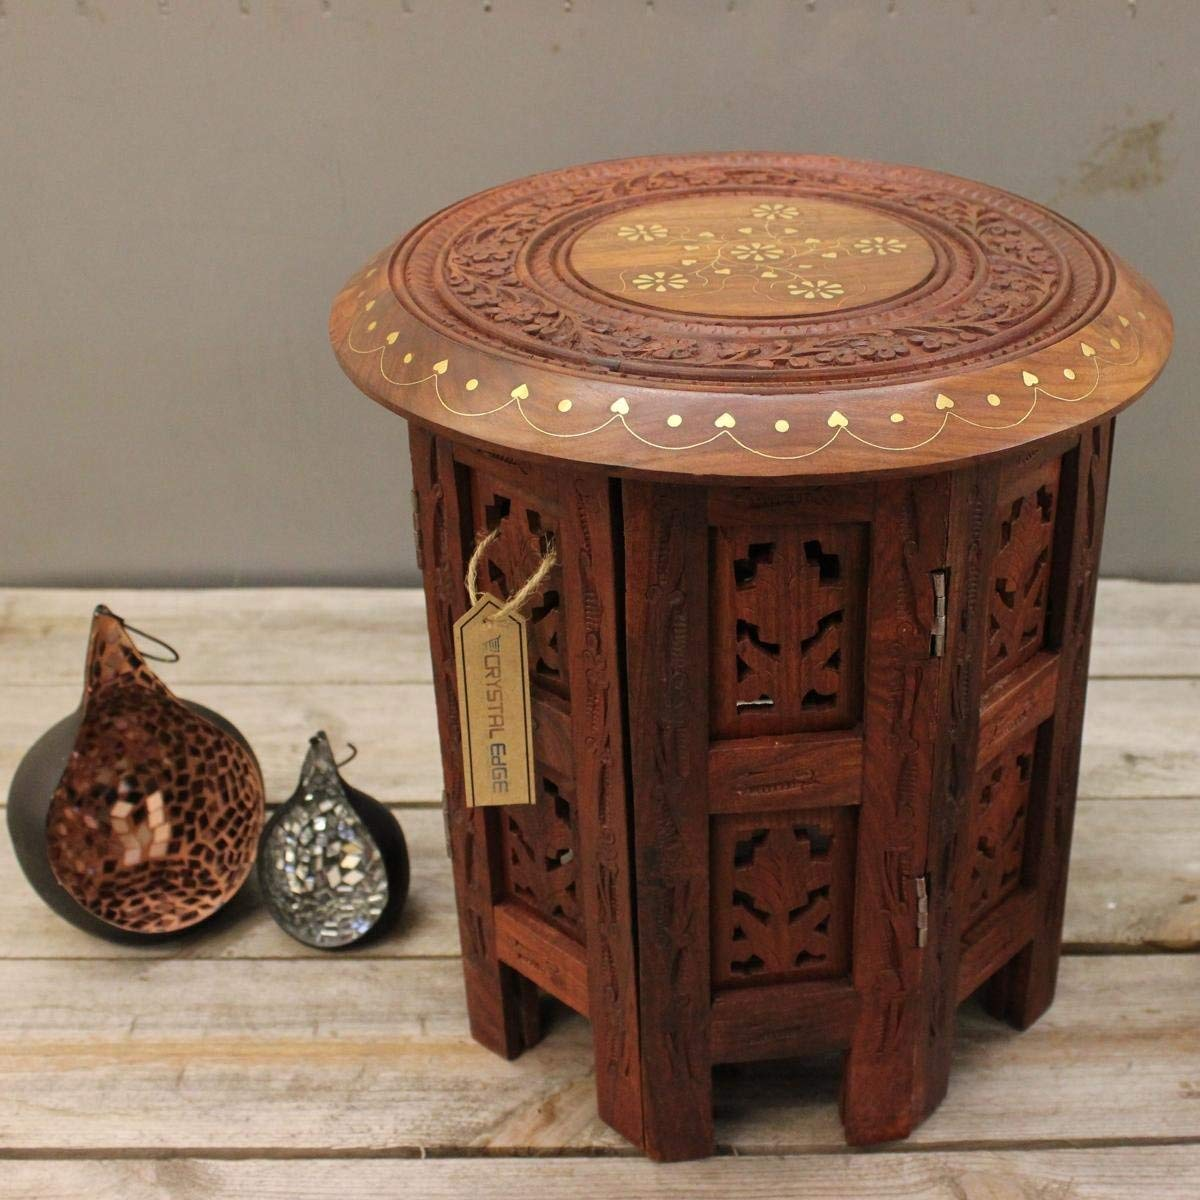 ahar small side table wooden round hand carved wood inlay accent and brass kitchen dining trestle garden parasol base pier one coupon code ikea fabric storage console set tall end